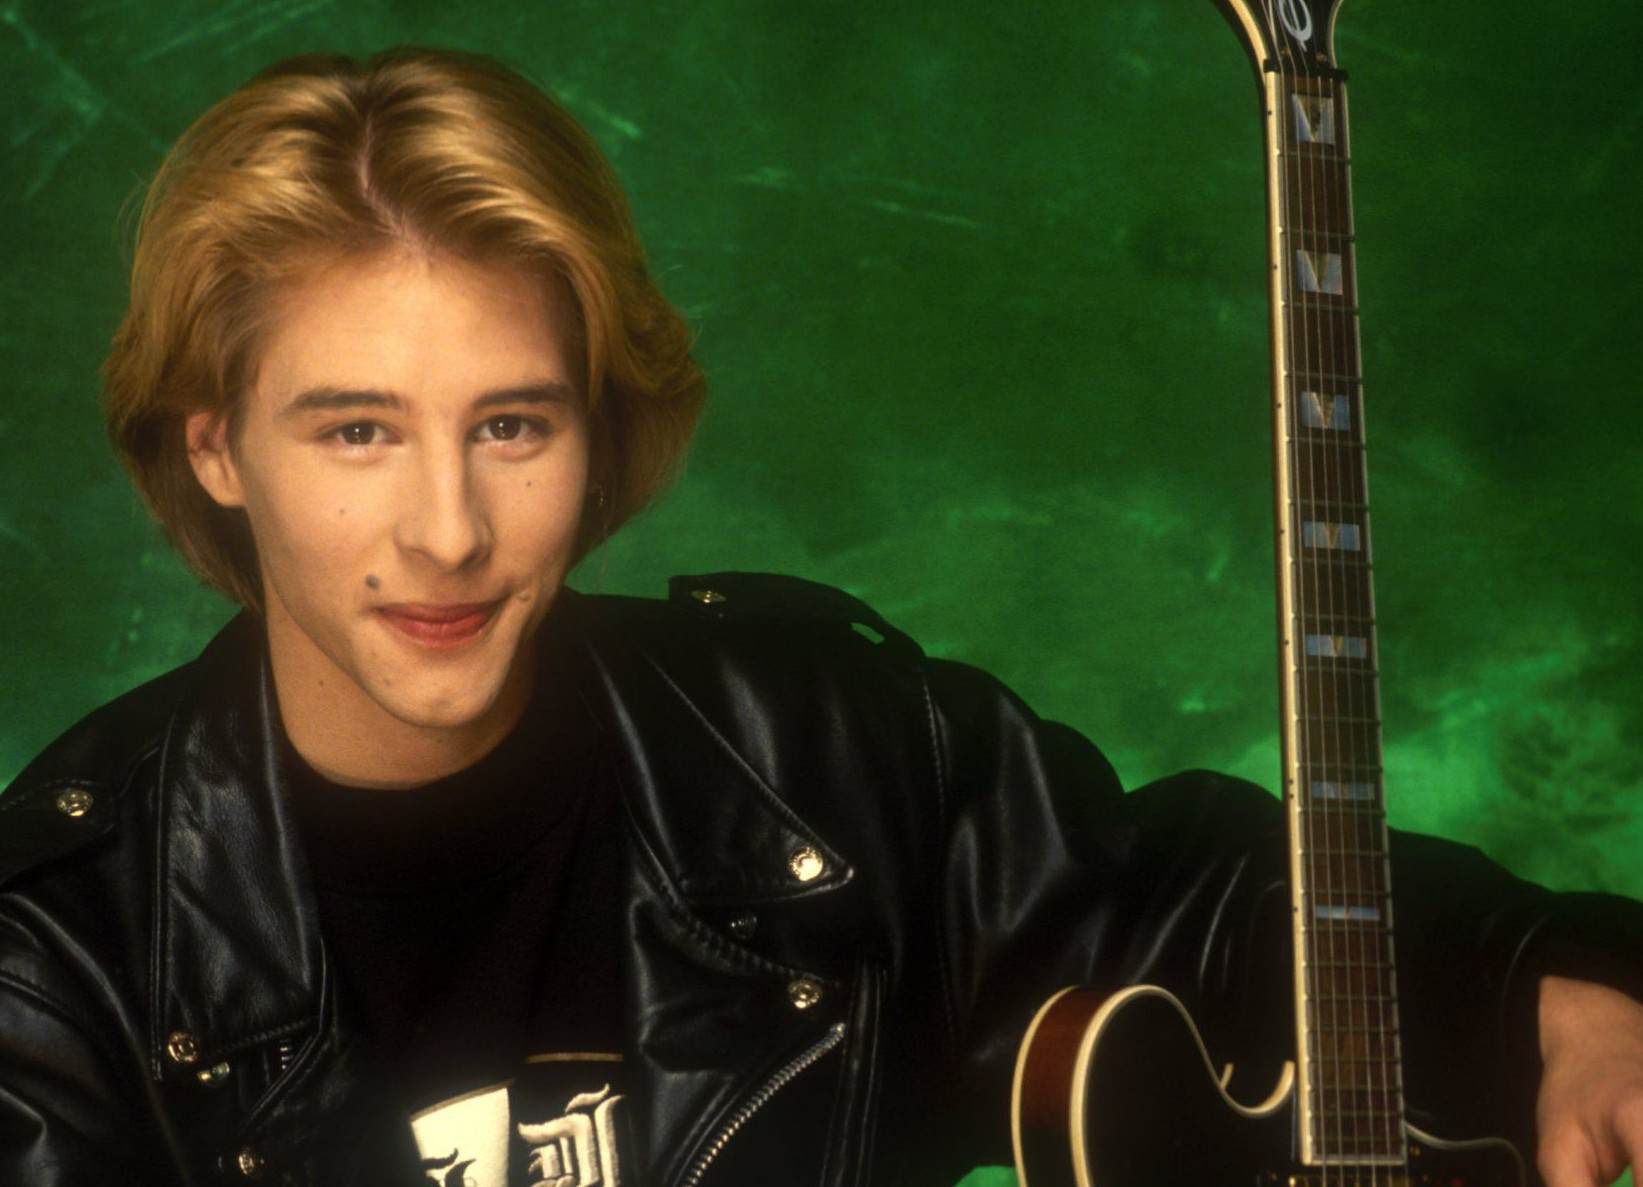 No Merchandising. Editorial Use Only Mandatory Credit: Photo by Andre Csillag/REX/Shutterstock (454216w) Chesney Hawkes - MAR 1991 VARIOUS